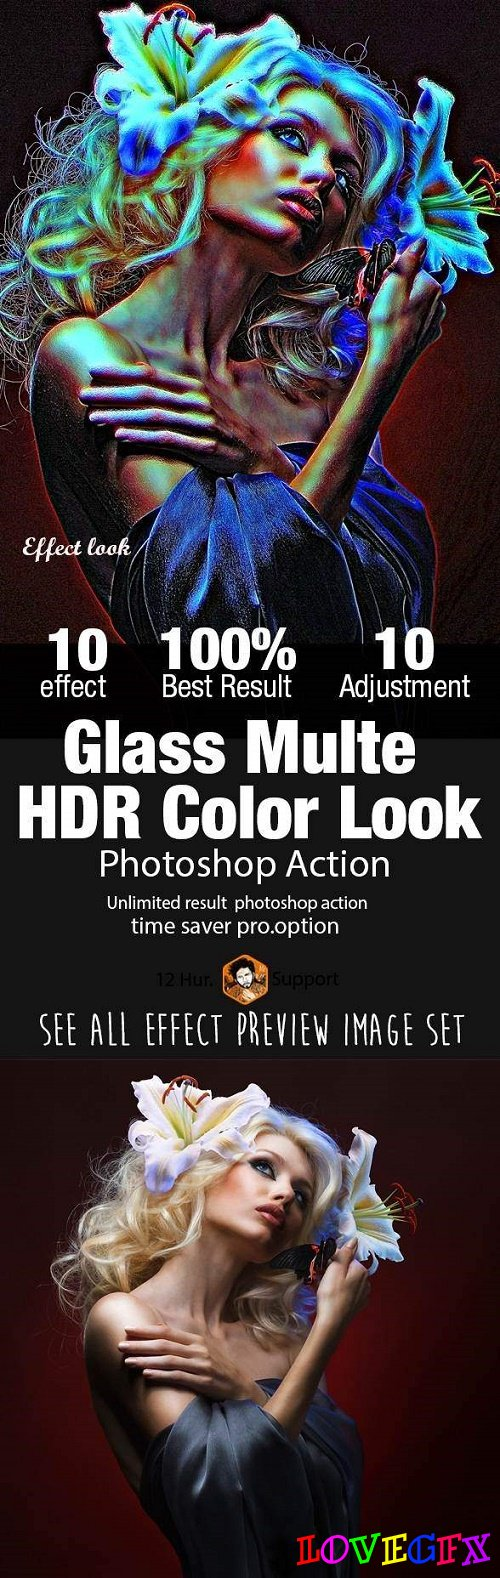 Glass Multi HDR Color Look 21560434